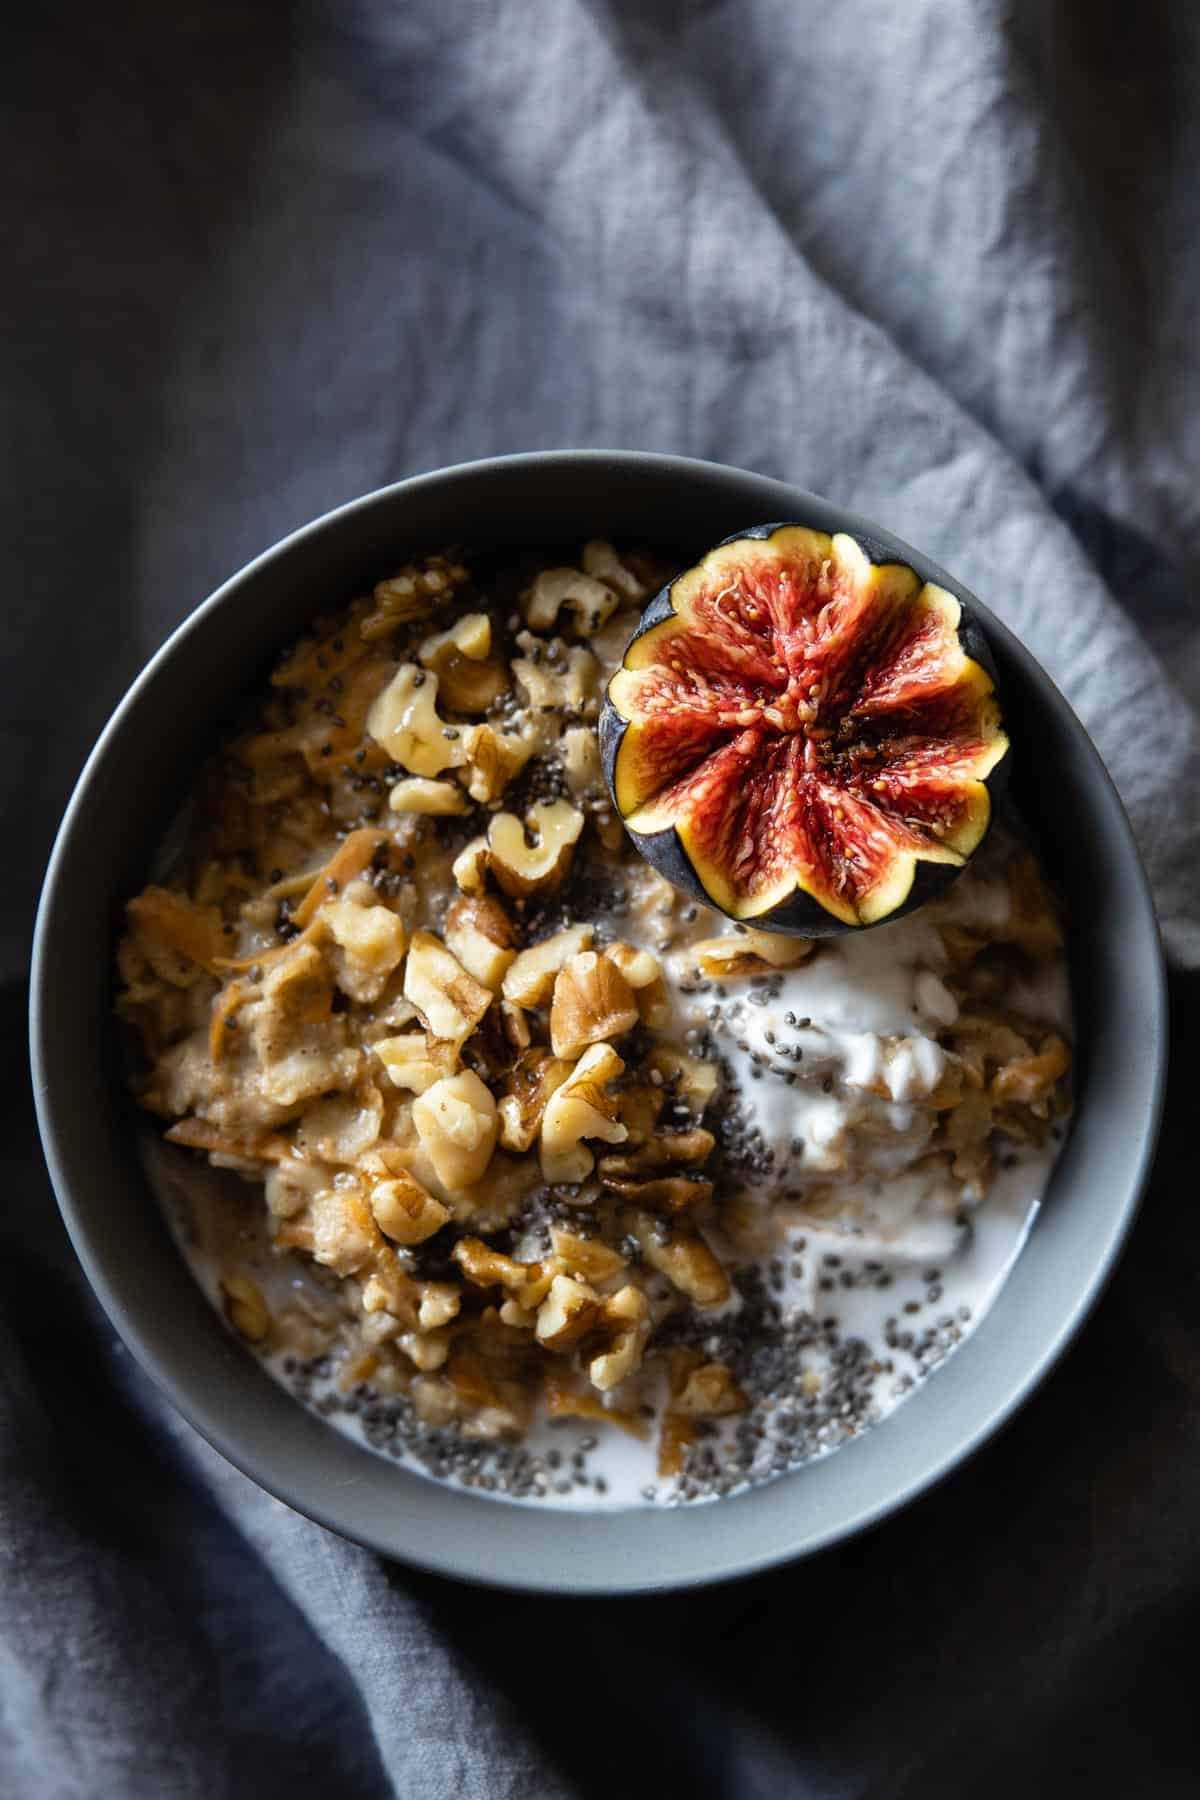 Carrot cake oatmeal in a grey bowl topped with chopped walnuts and half a fig.